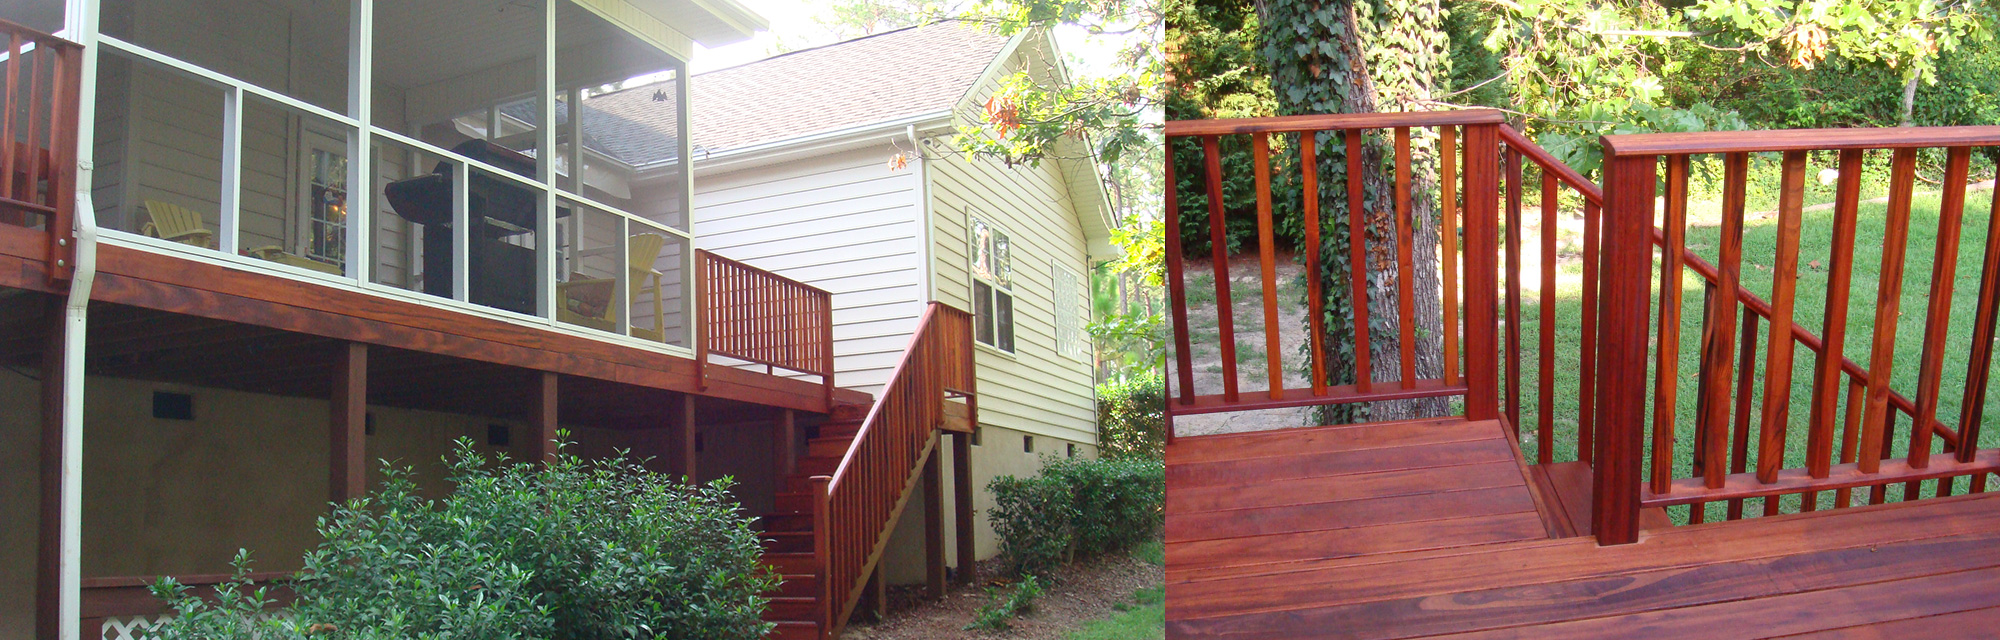 Deck Construction Services in North Carolina